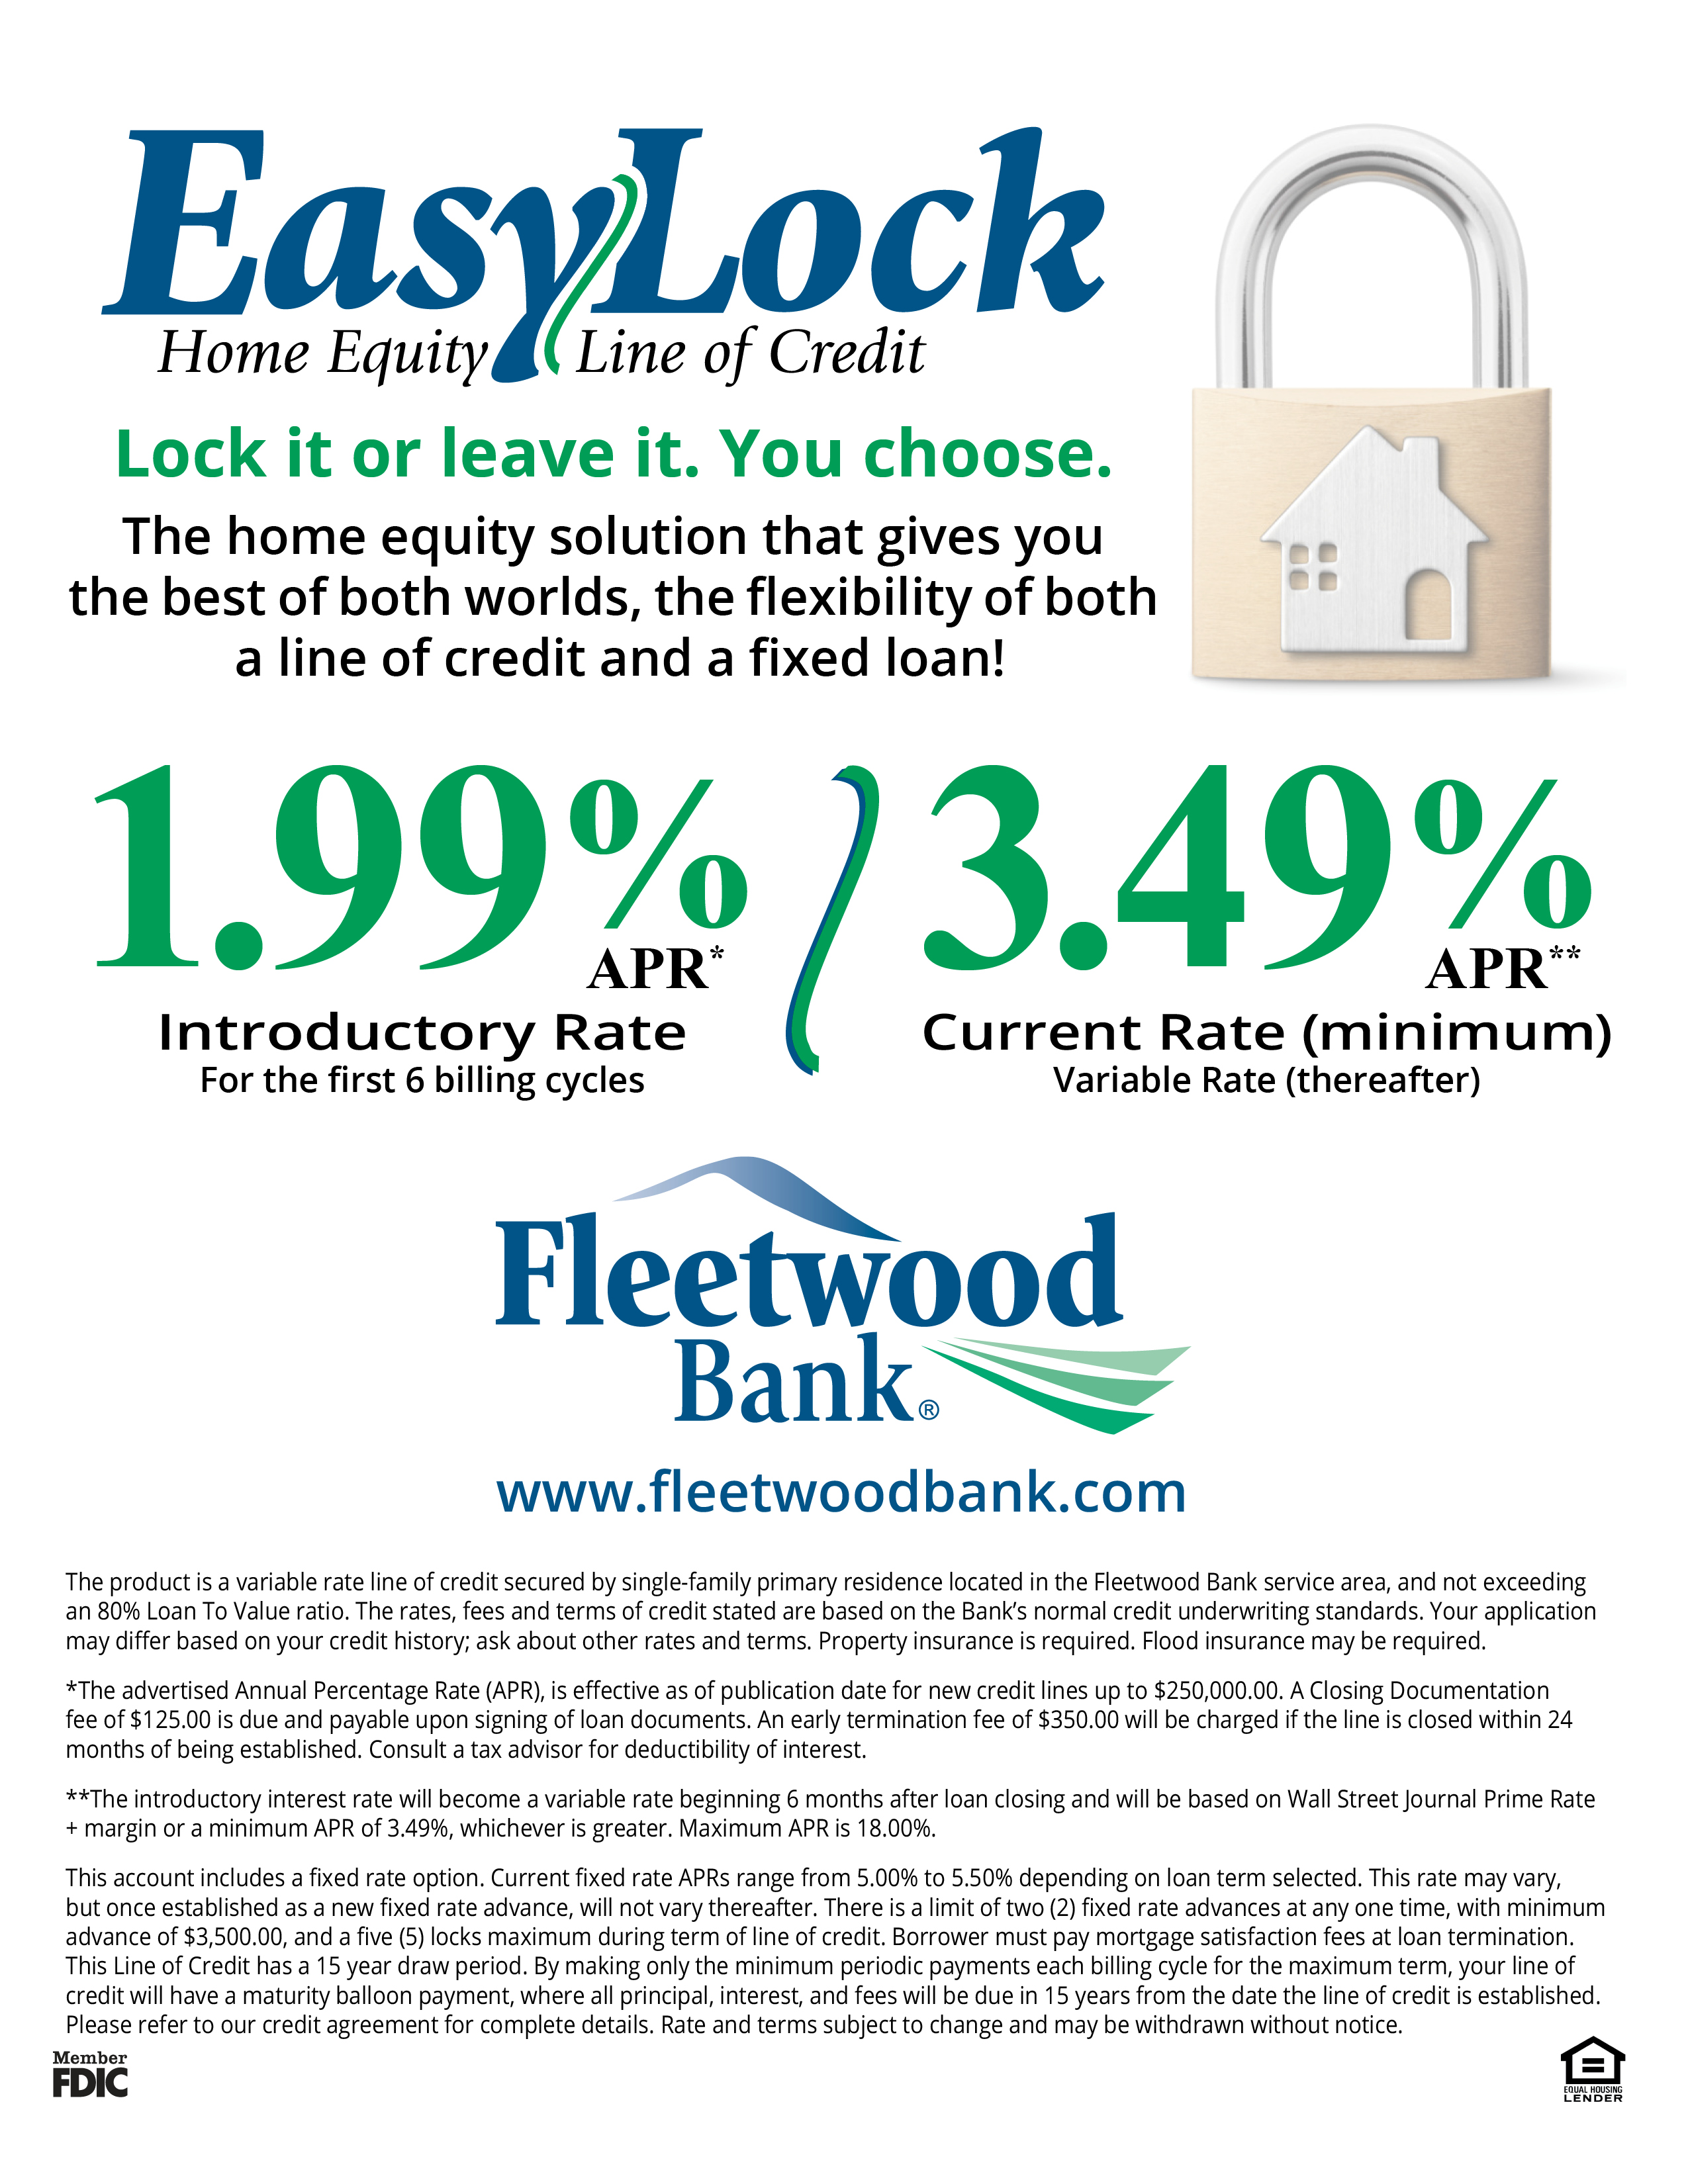 Fleetwood Bank Chase Home Equity Payoff Wiring Instructions Learn More